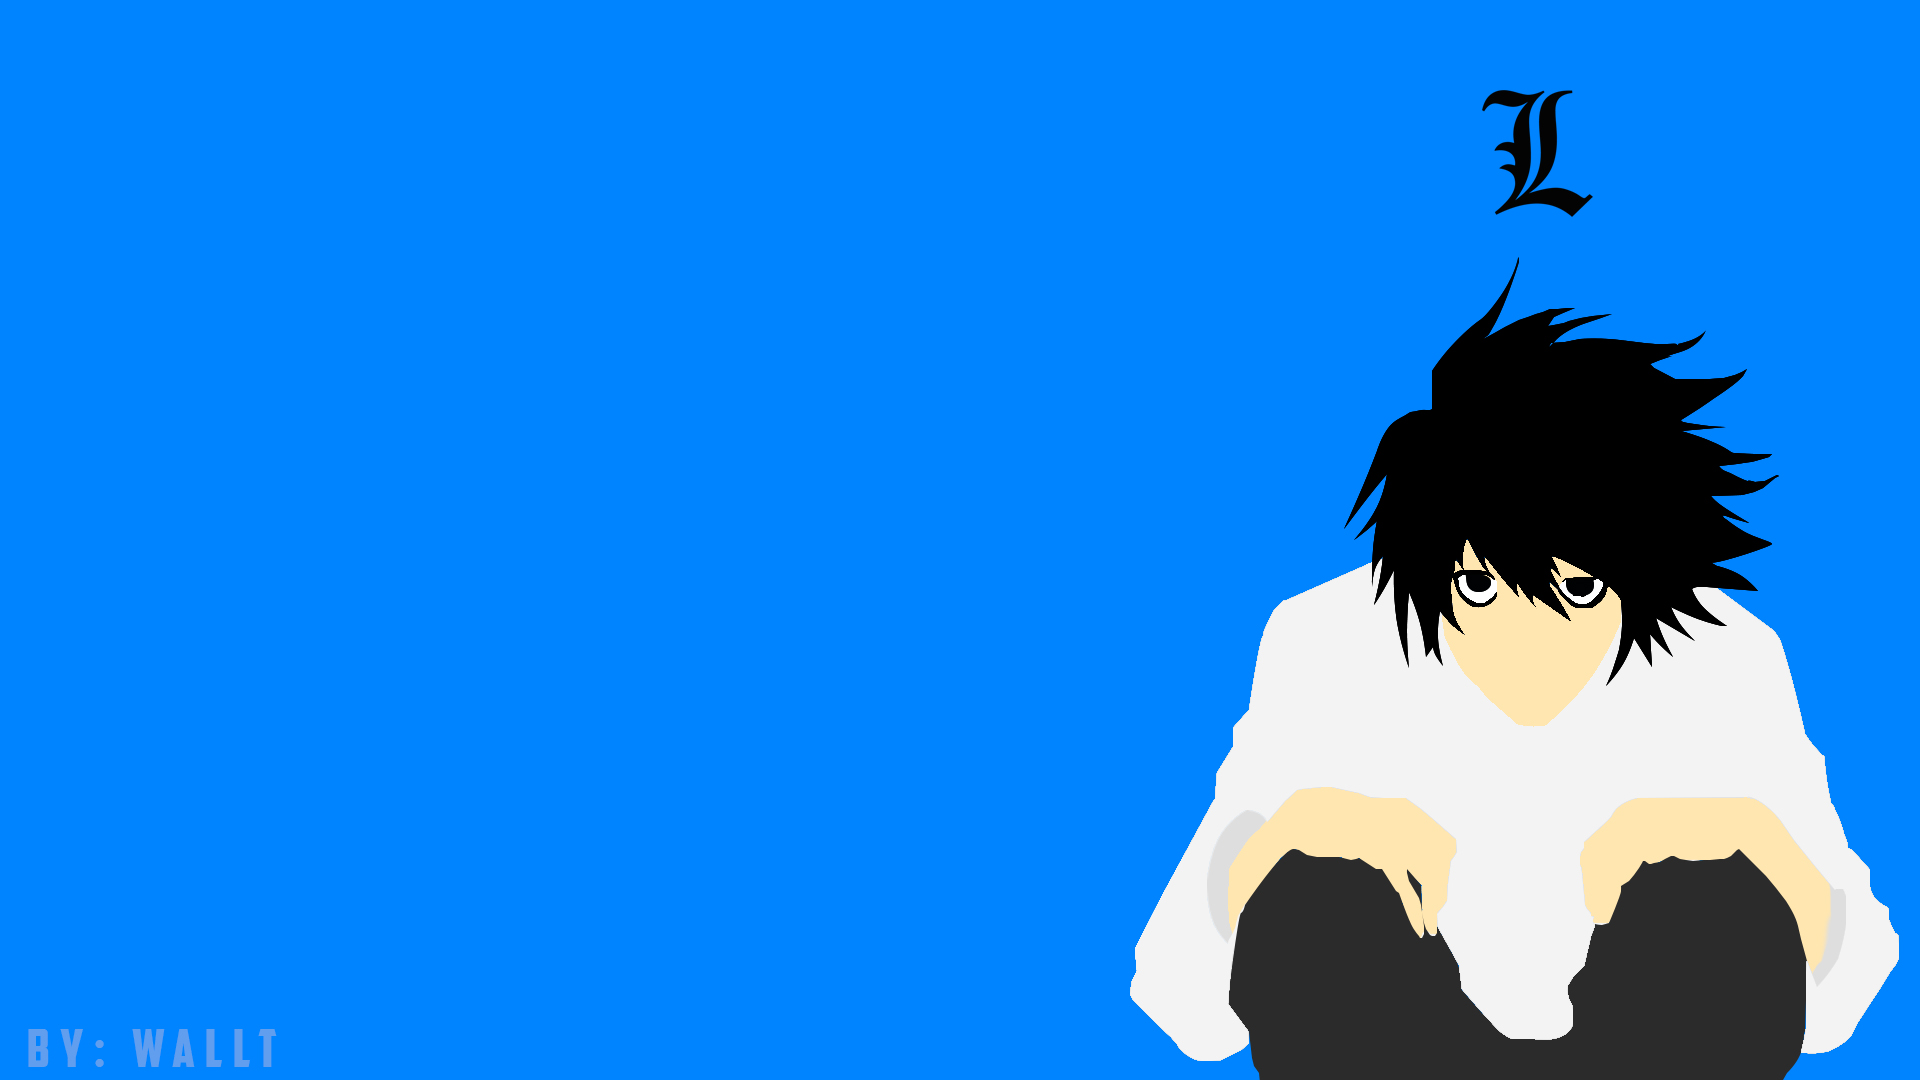 wallpaper L minimalista death note by walltgfx 1920x1080